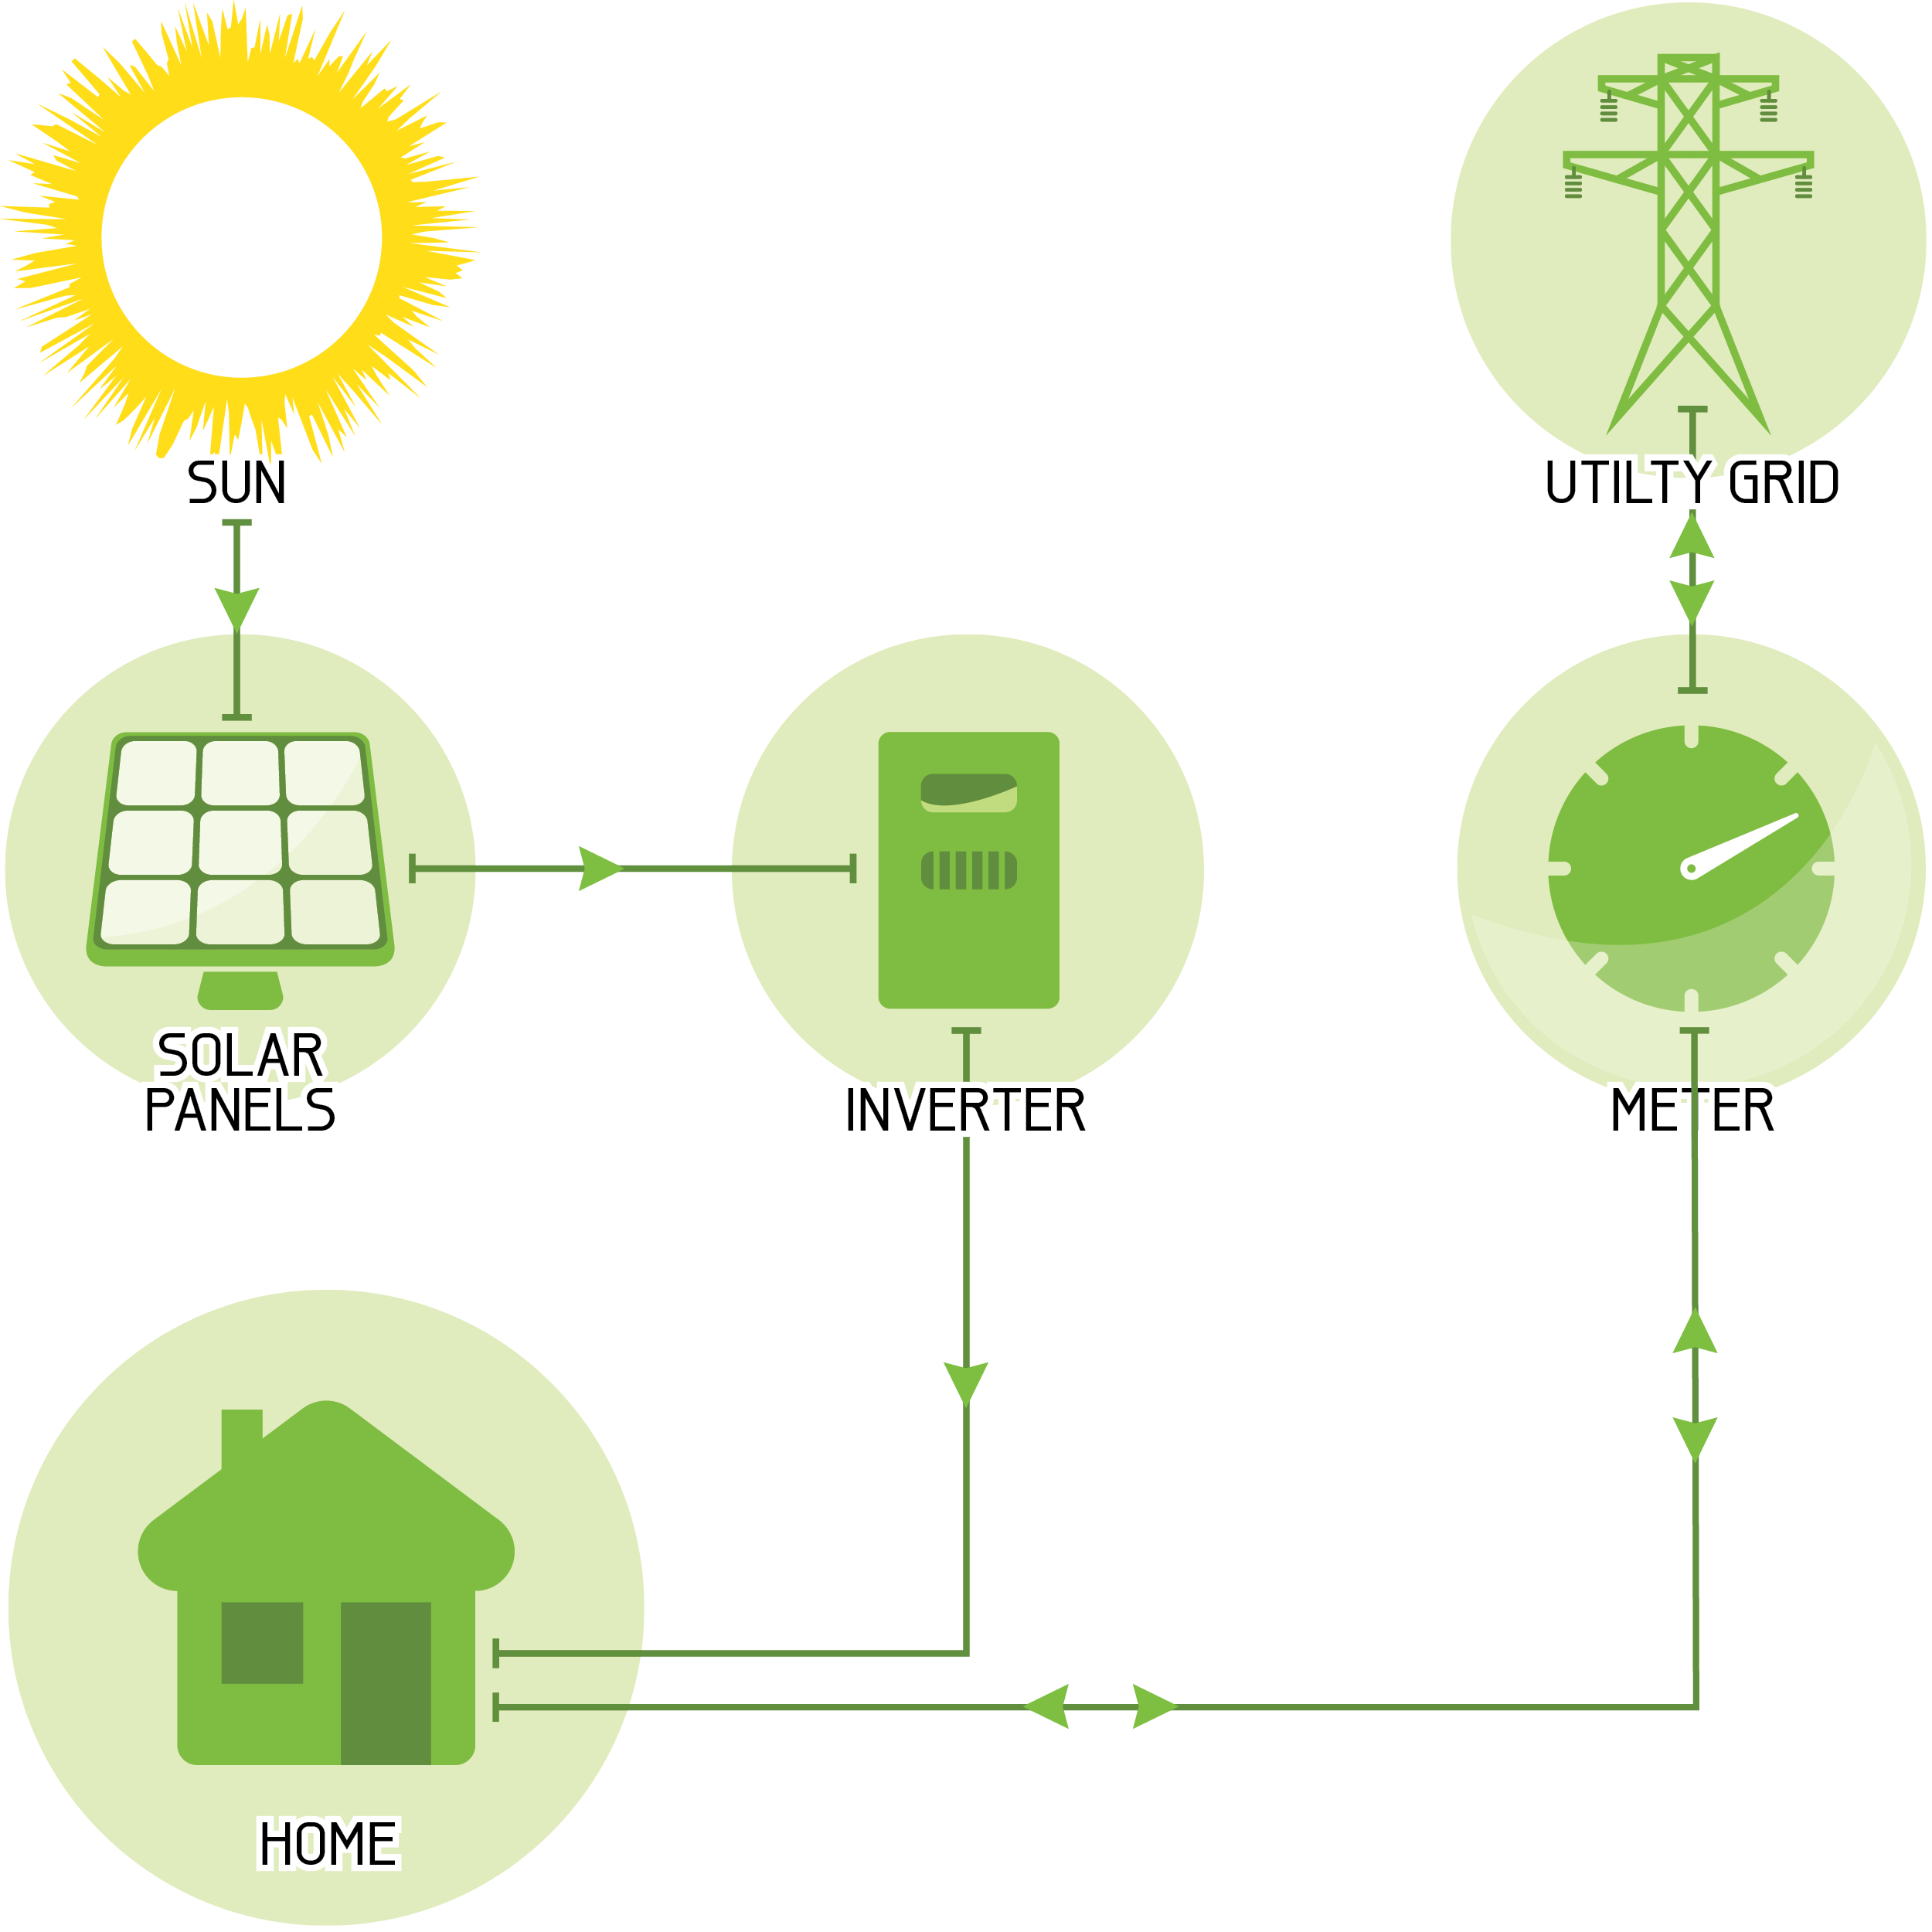 Solar Power Grid Connect Mode Electrical How Panels Work Diagram Panel Photovoltaic Connected String Inverter System